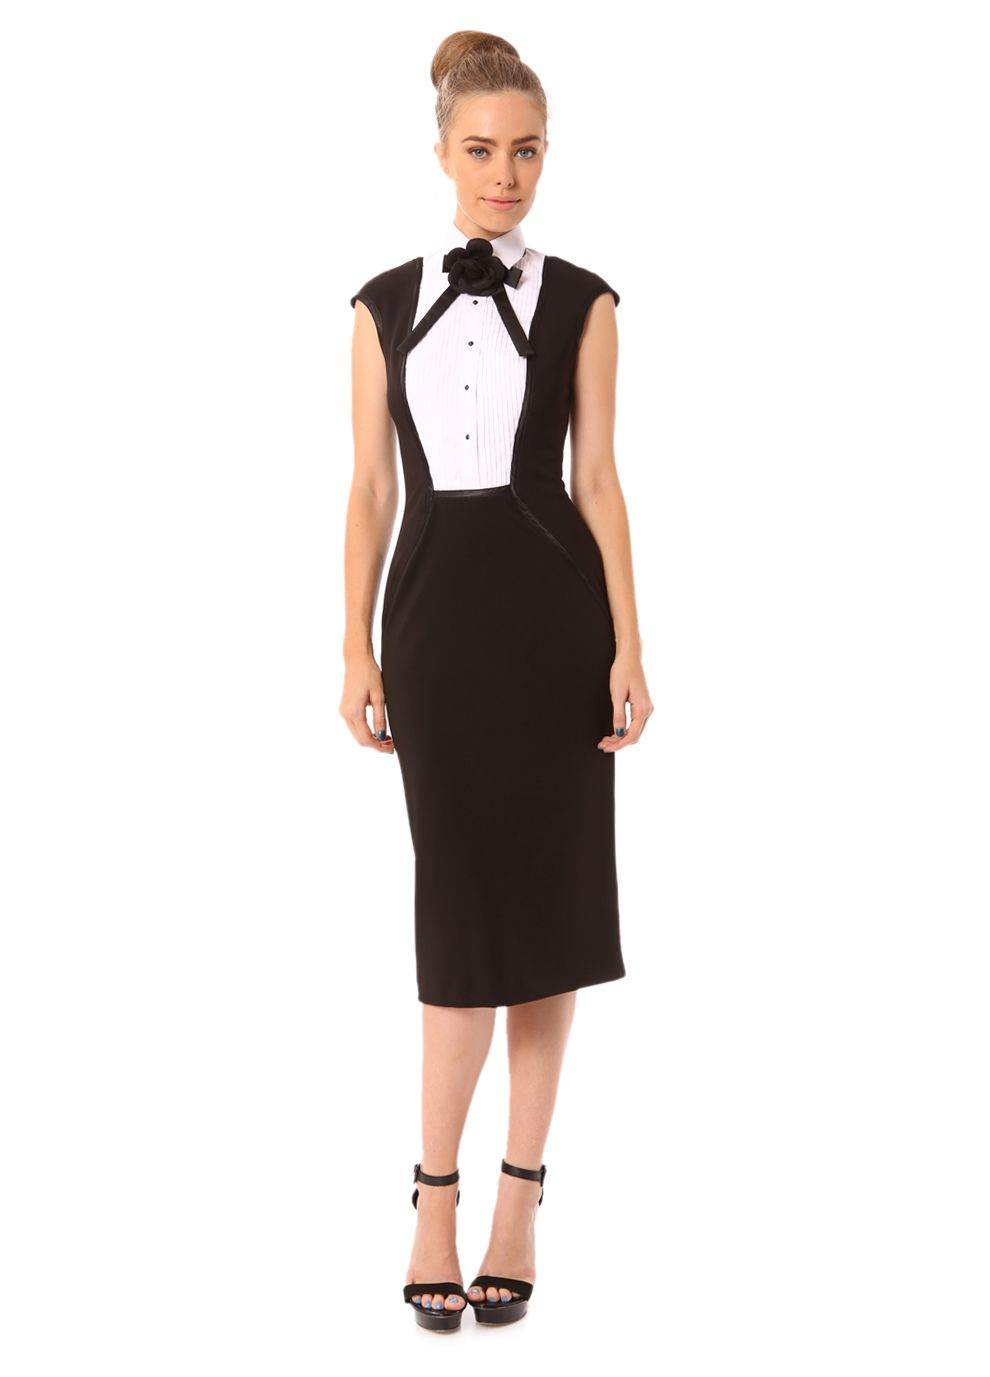 Nicolangela; Tuxedo Cocktail dress-Black/White Fun and classy | pure ...